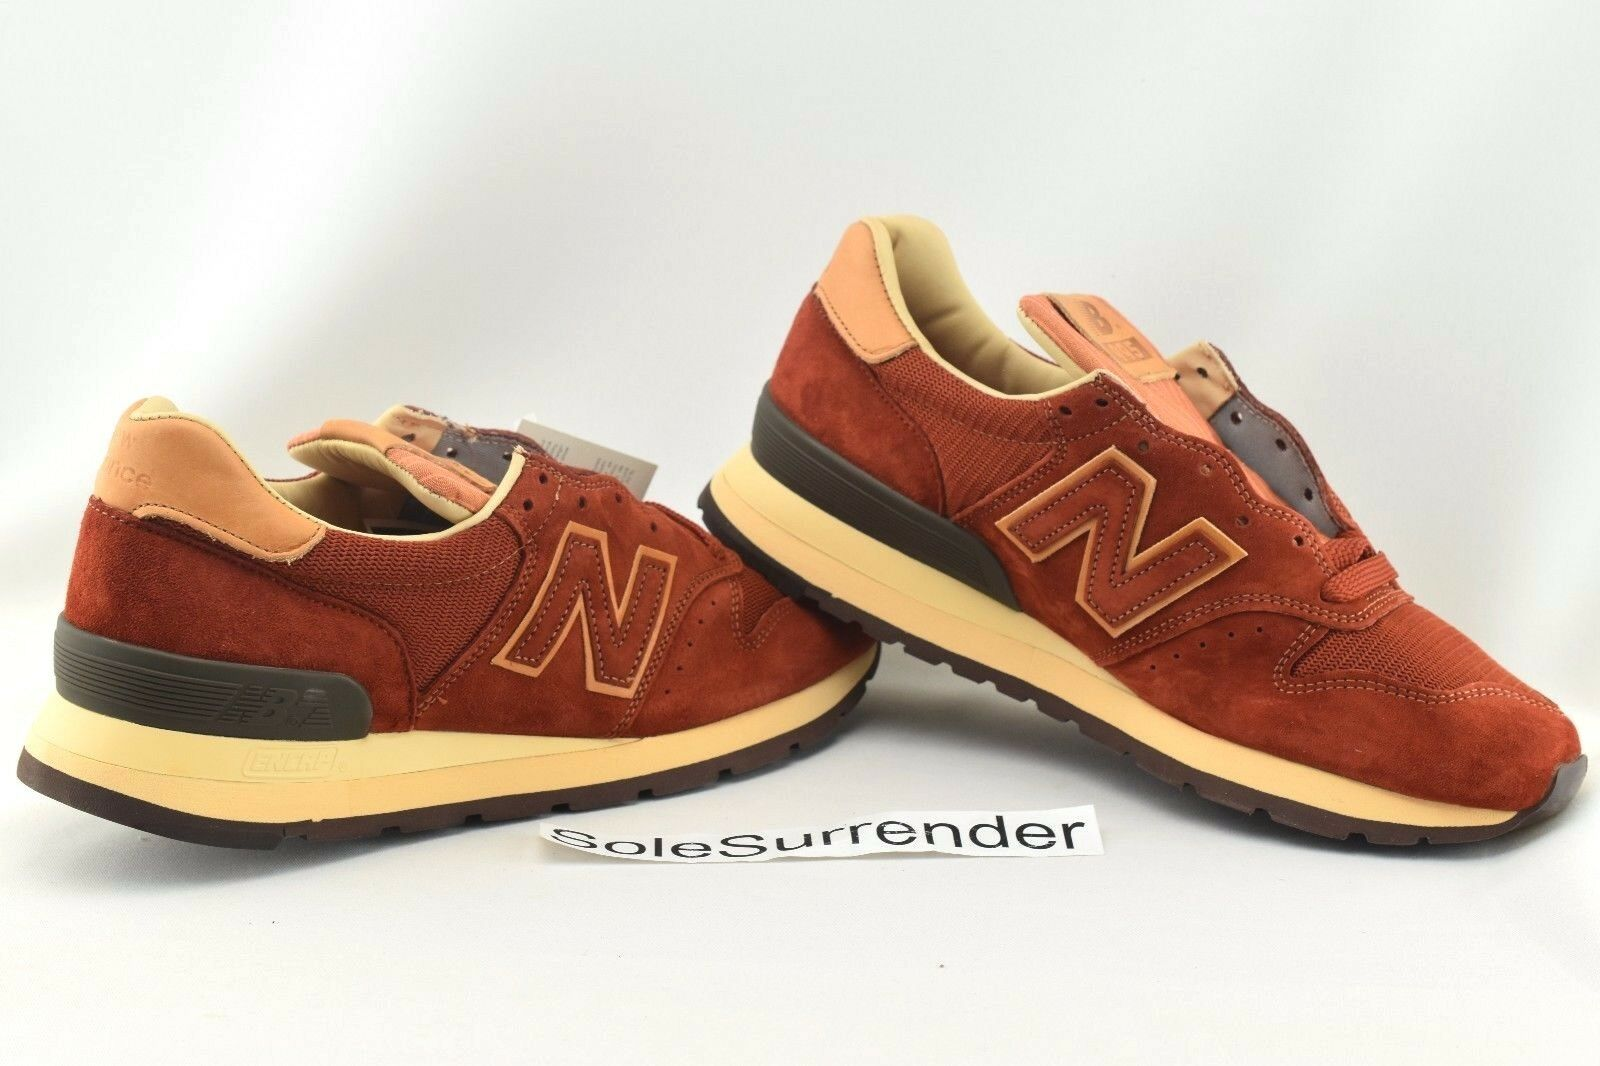 New Balance 995 Baseball Pack m995dbg - tamaño 10 - m995dbg Pack Todd Snyder Rust tan Marrón USA 70dc0a